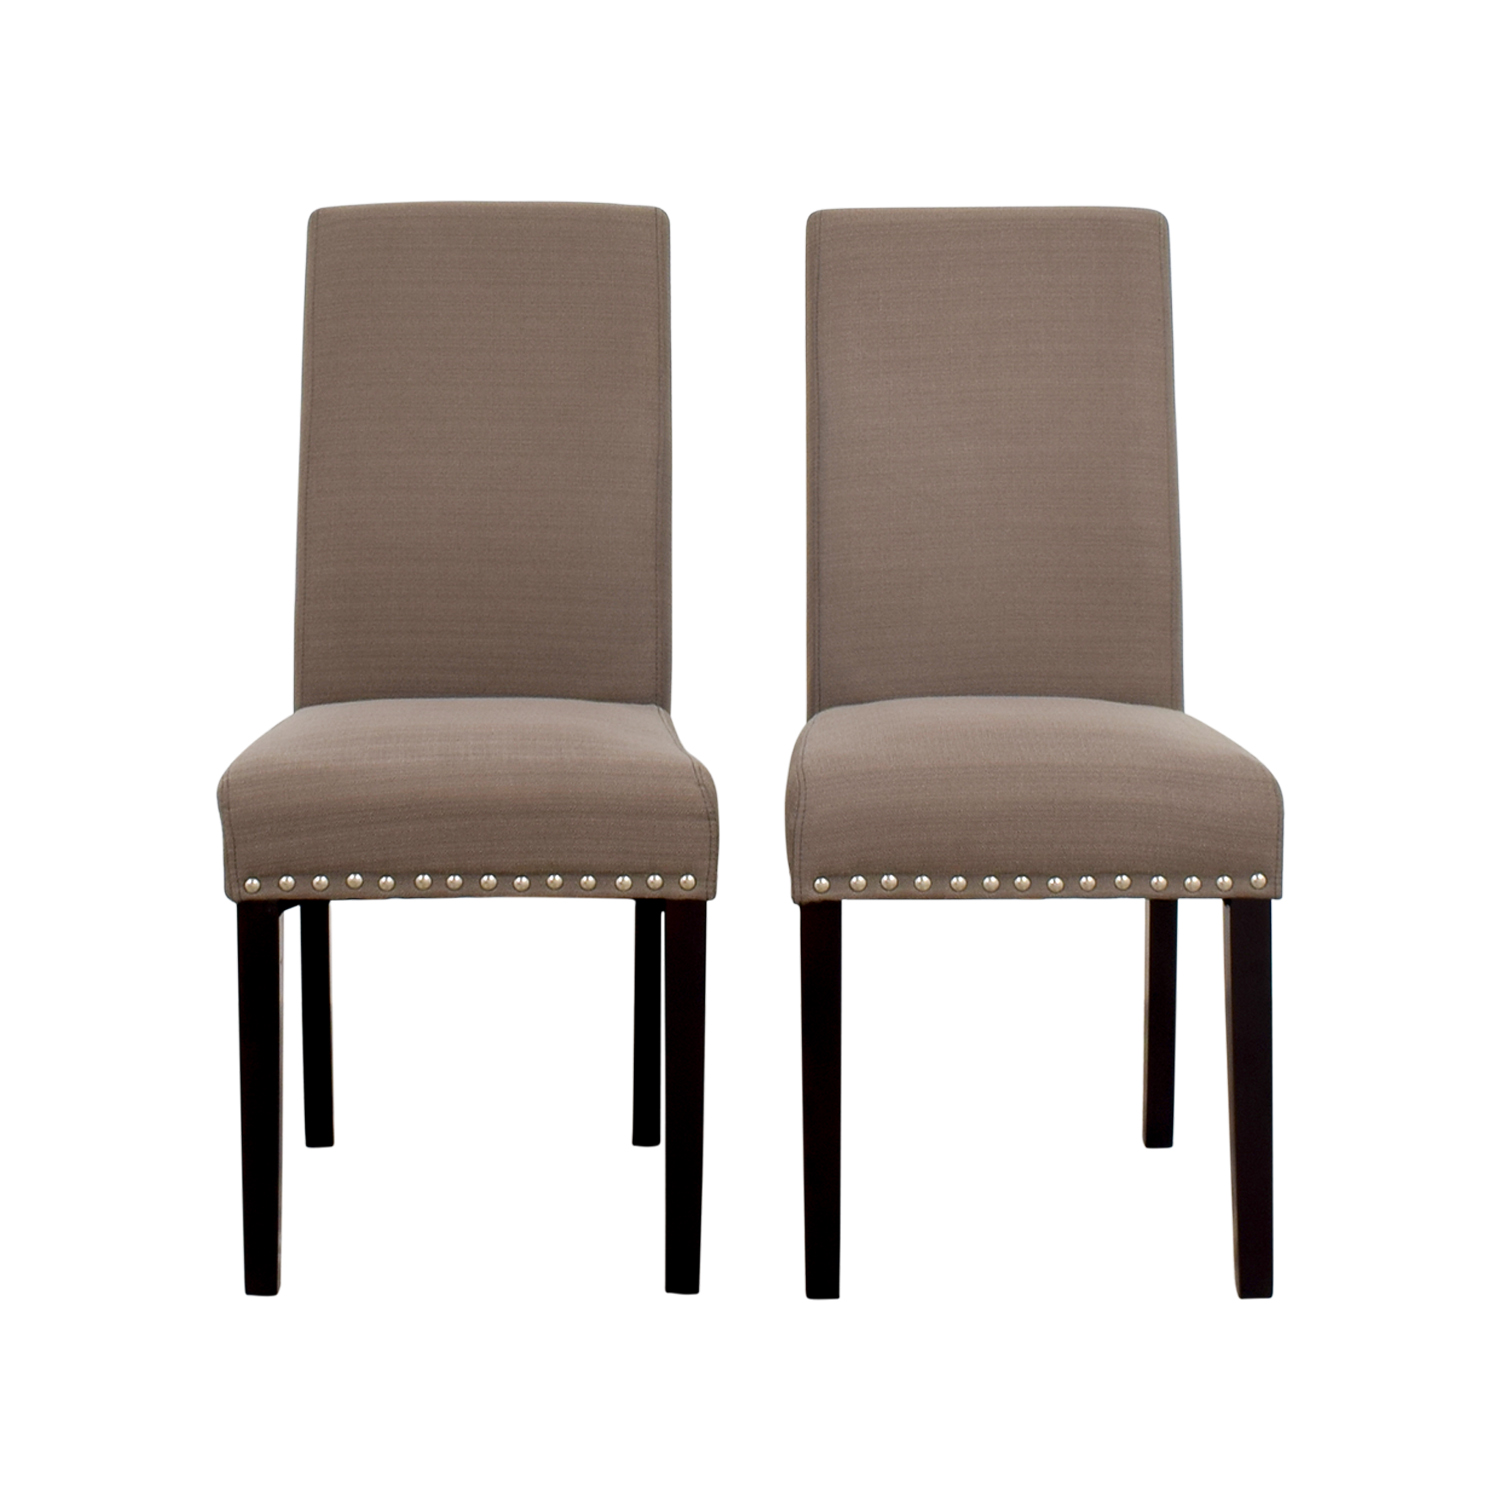 Nailhead Dining Chairs Canada Home Decor Takcop Com